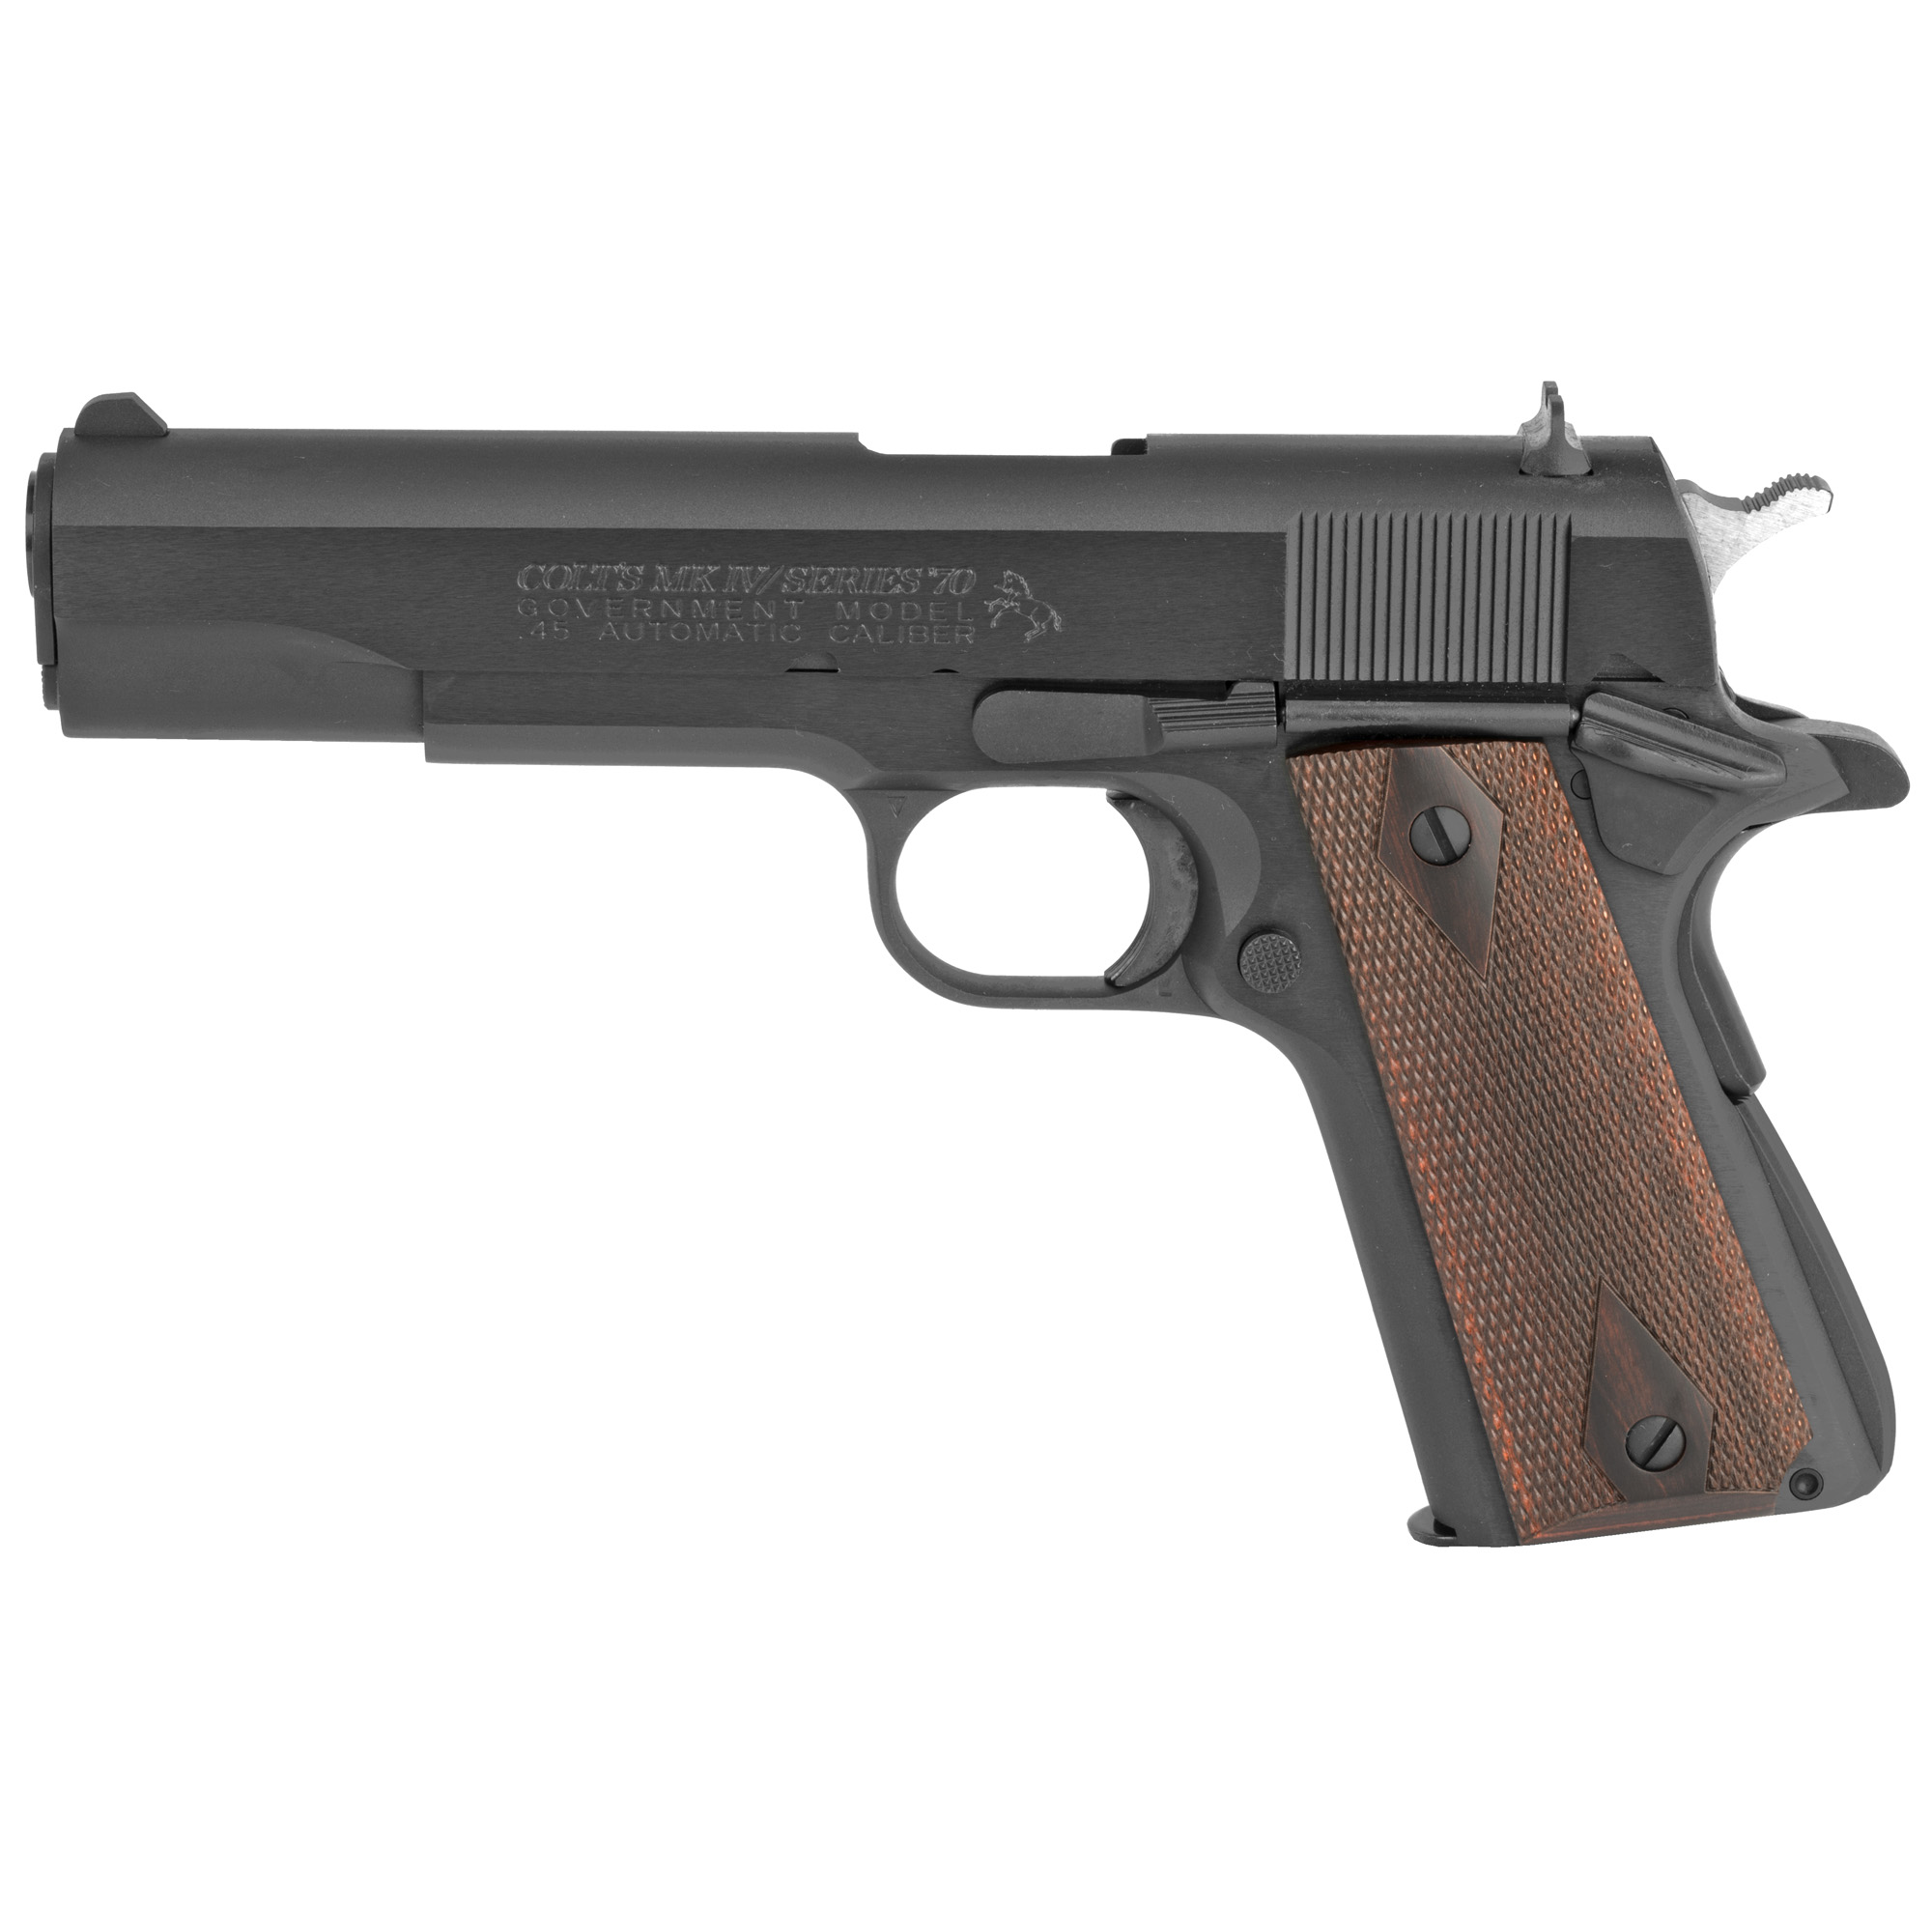 "Colt's Series 70 pistol features the Series 70 firing system"" making it a faithful reproduction and throwback to Colt Government Models manufactured during the 1970's. It is a rugged and dependable Colt that features high maintainability and sustains repeatable accuracy."